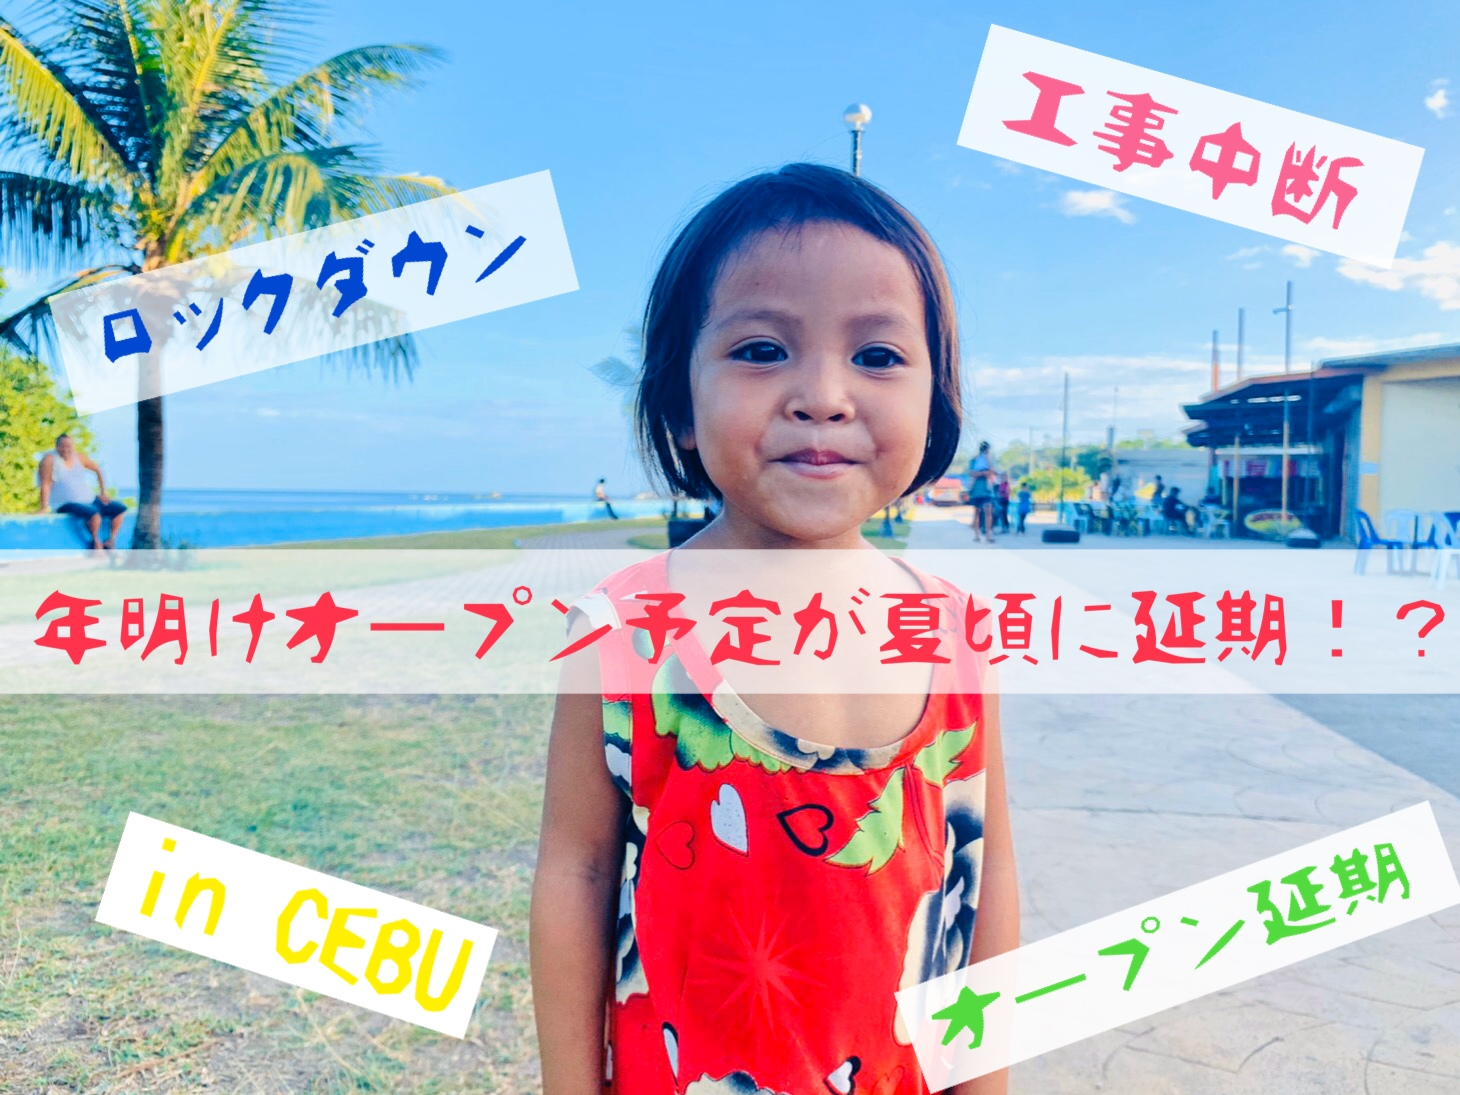 luve heart's And Be cebuの現状について